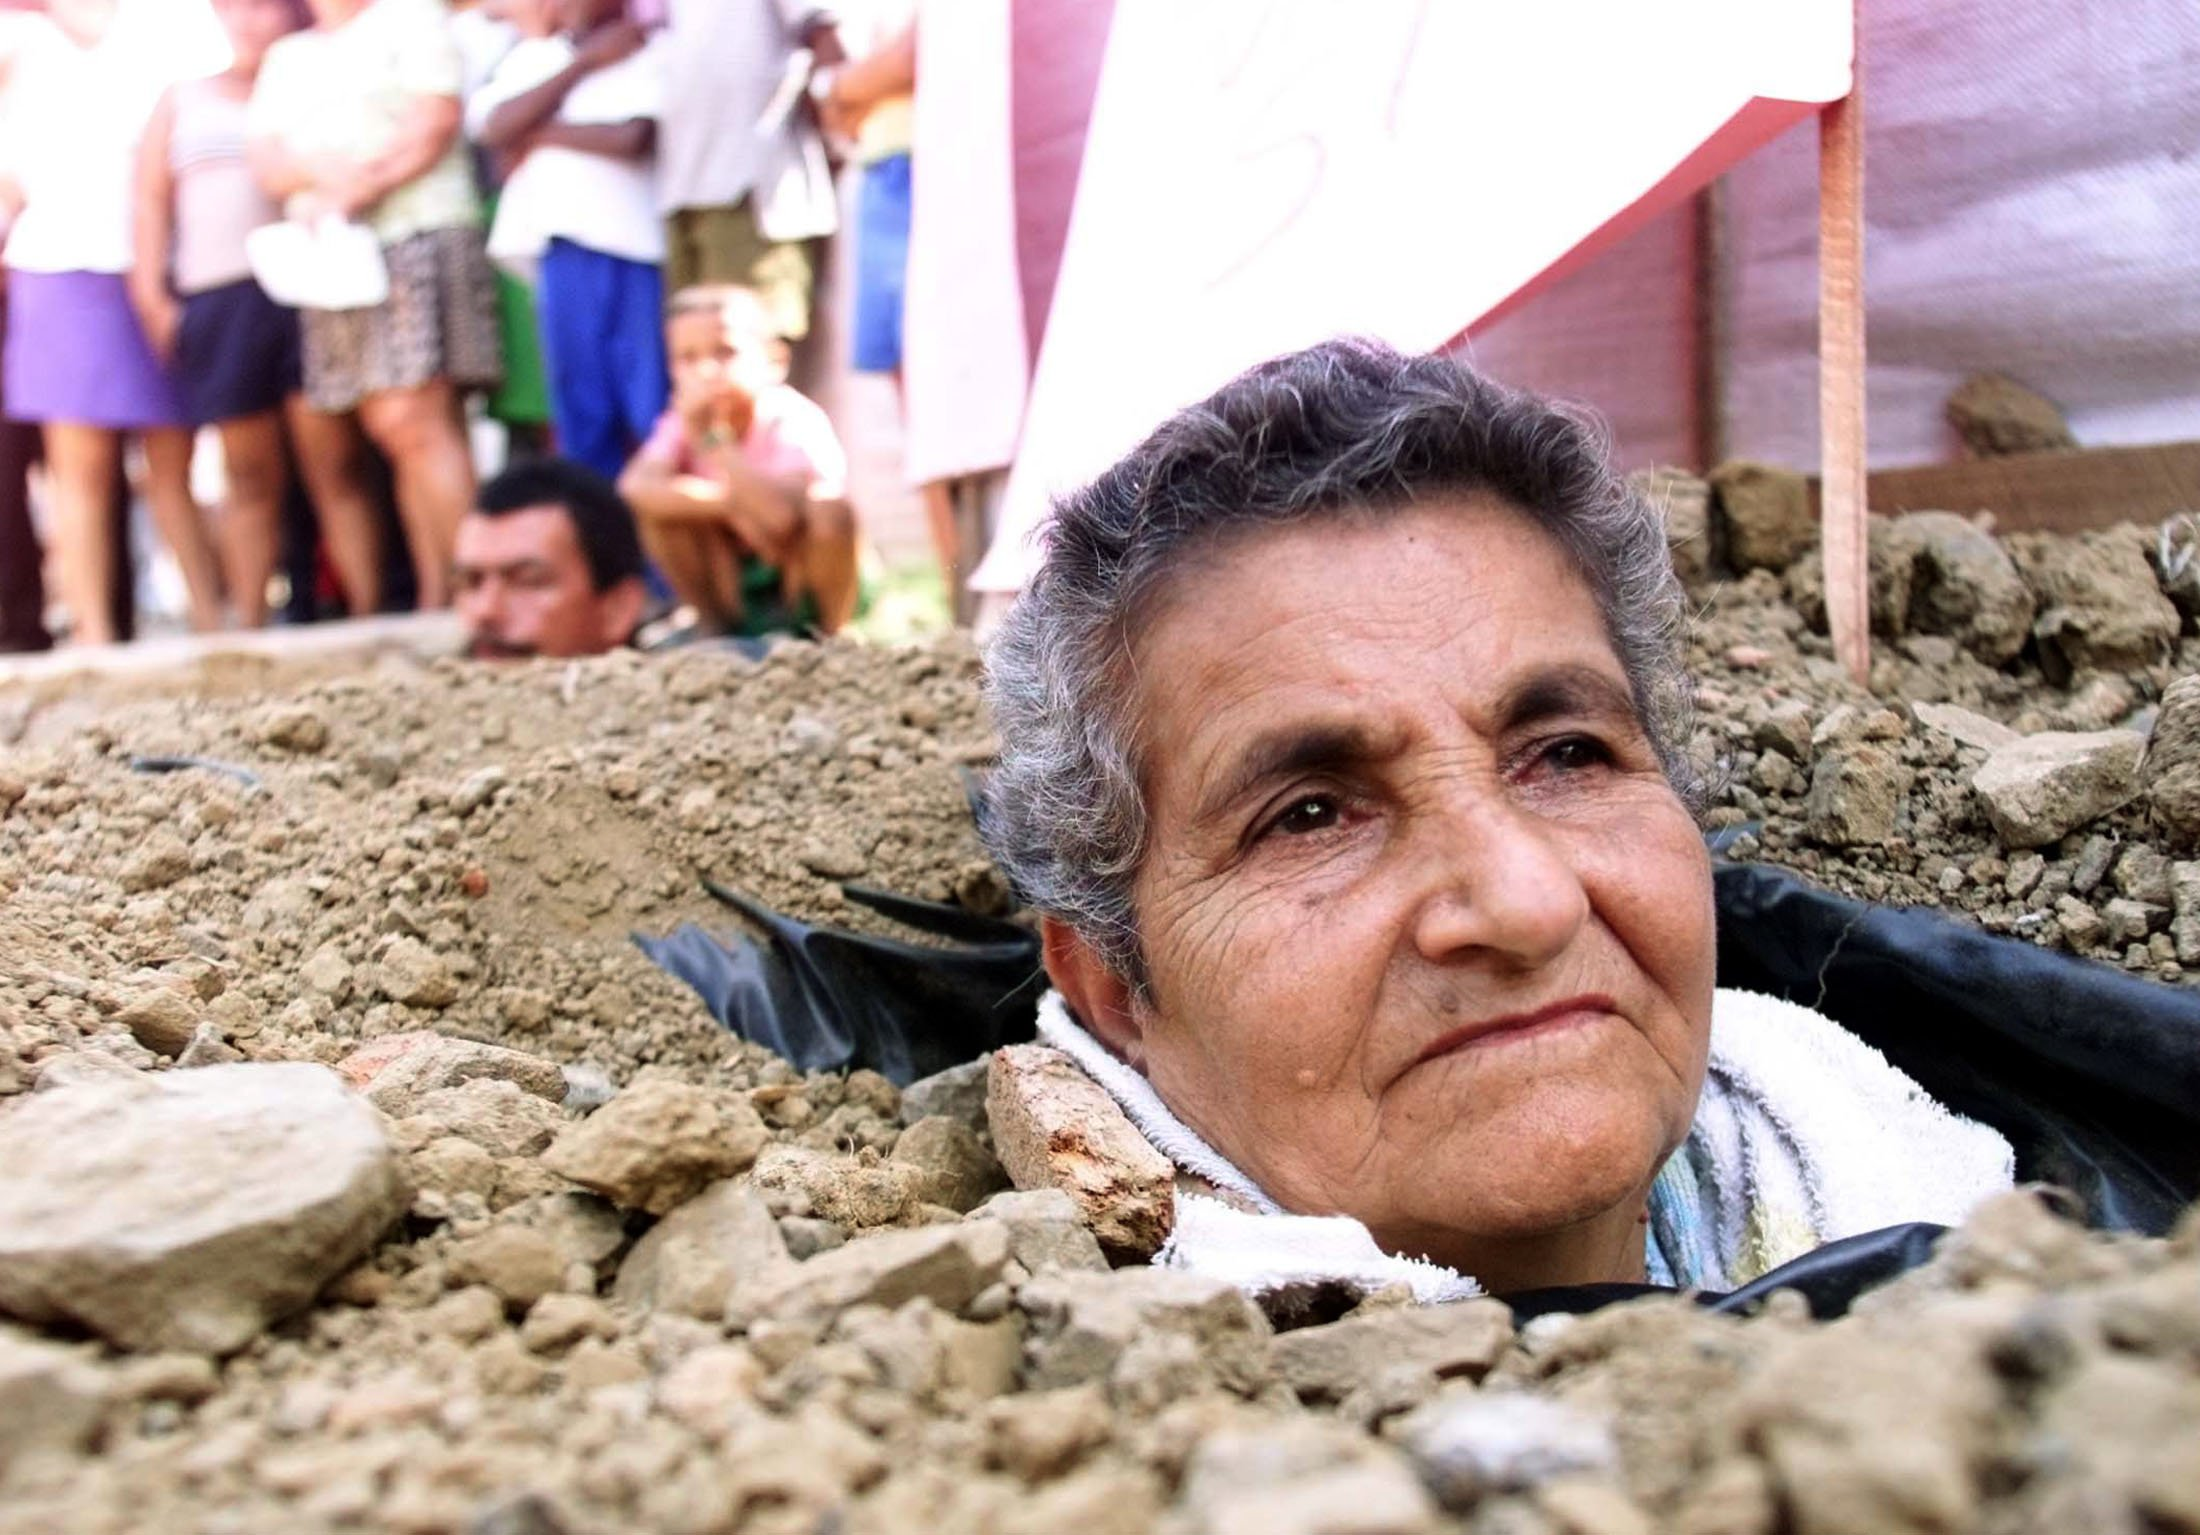 Colombian Maria Gabriela Ruiz, 66, and Nicolas Salazar, 32, (rear), who are buried up to their necks in the ground, stage a protest in a popular sector of Cali, July 4, 2003. Three people, two men and a woman, buried themselves three days ago in protest against the government because 150 displaced persons have not been relocated to a safe sector of Cali. REUTERS/Eduardo Munoz Pictures of the month July 2003